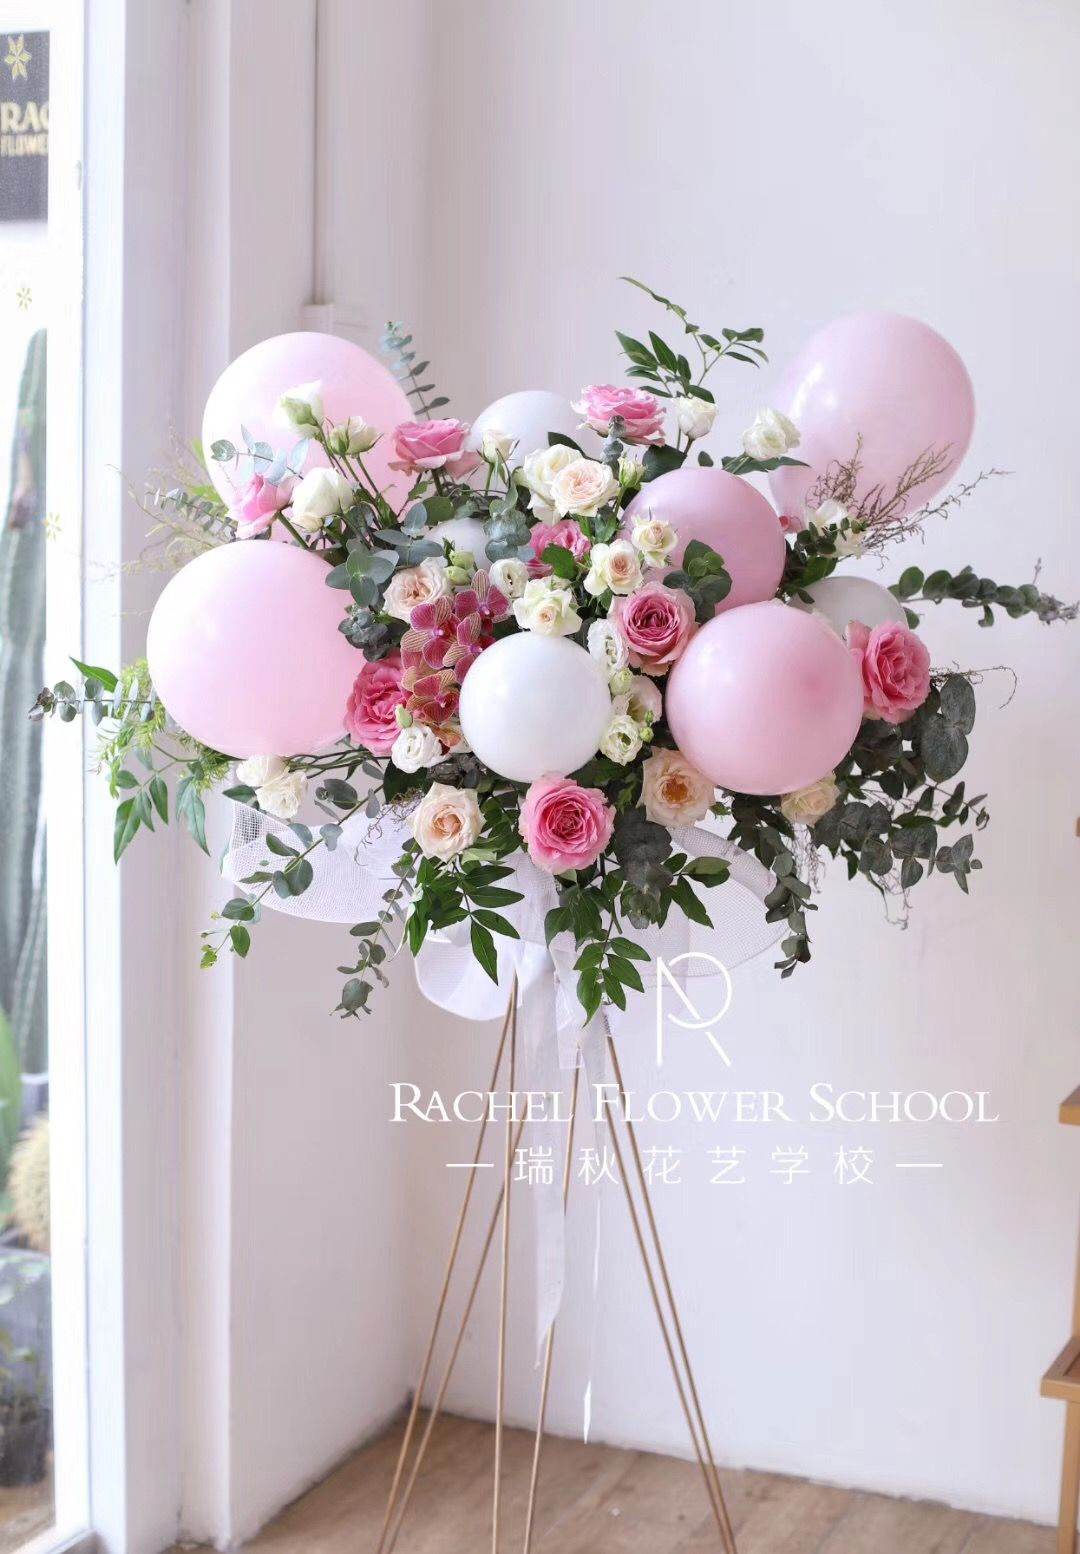 Pin By Sarah Jackson On 开业花篮 Floral Balloons Balloon Decorations Party Balloon Centerpieces